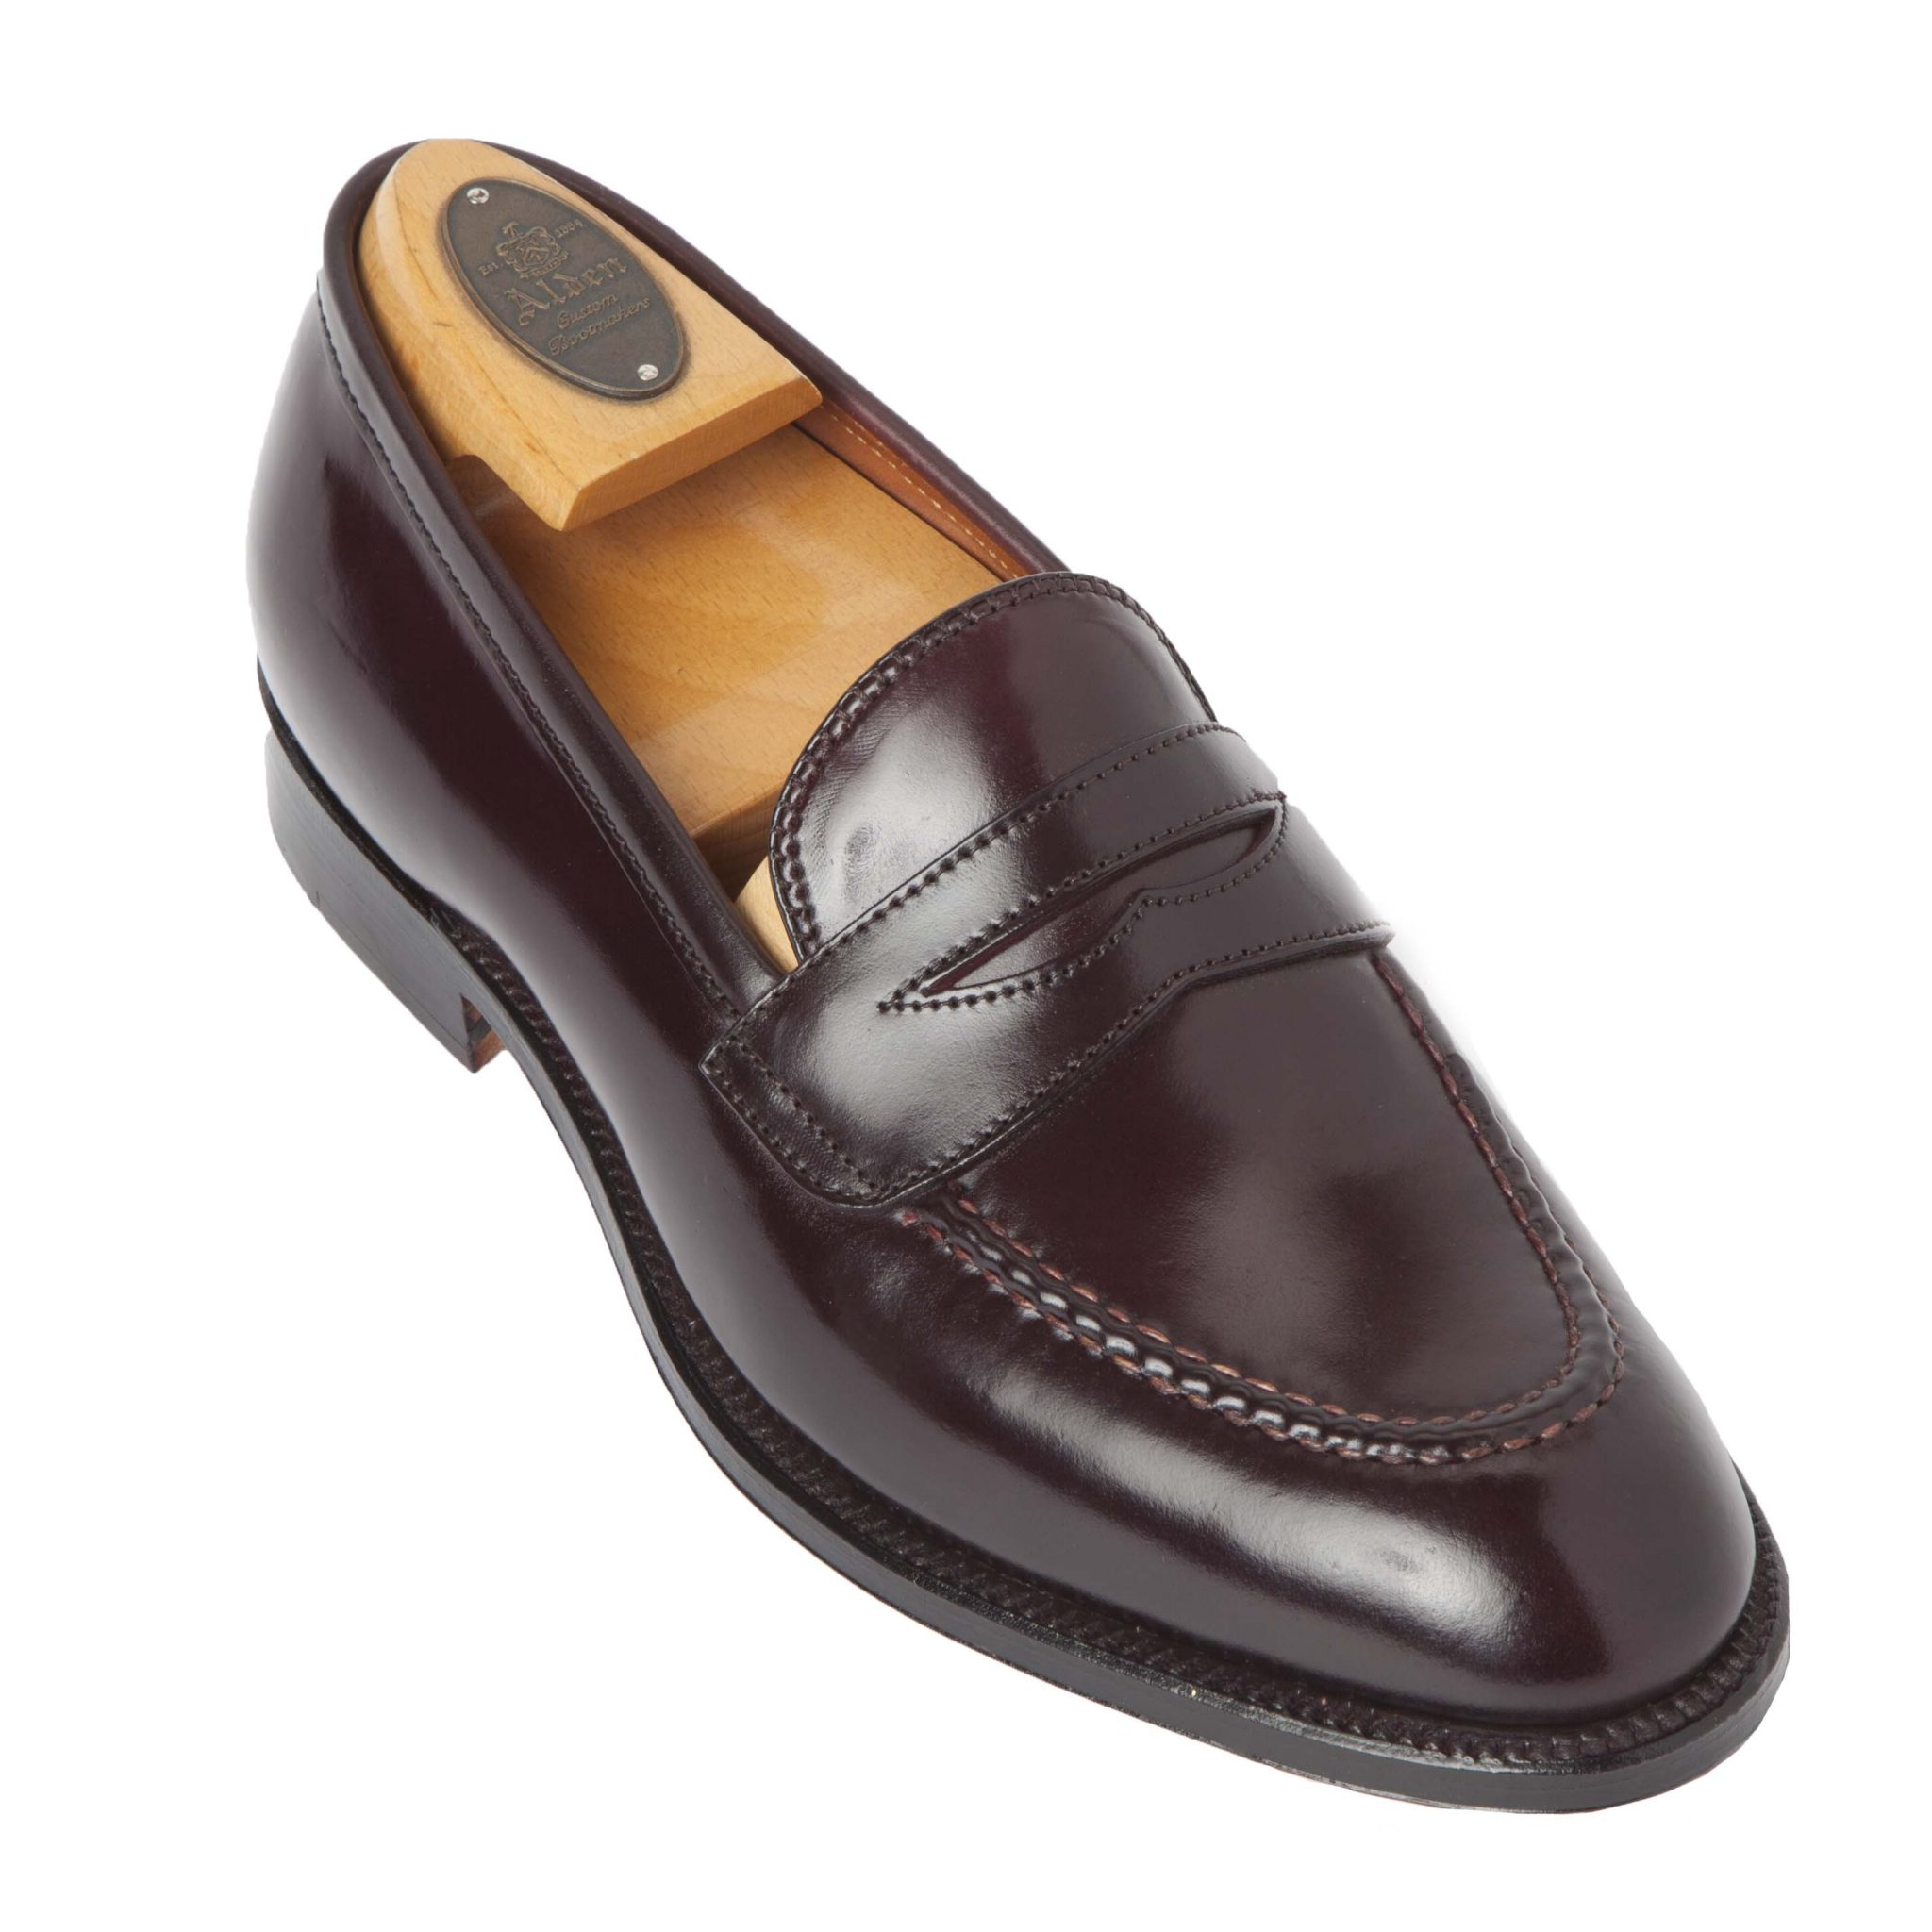 Slip on alden shoes madison avenue new york for The alden